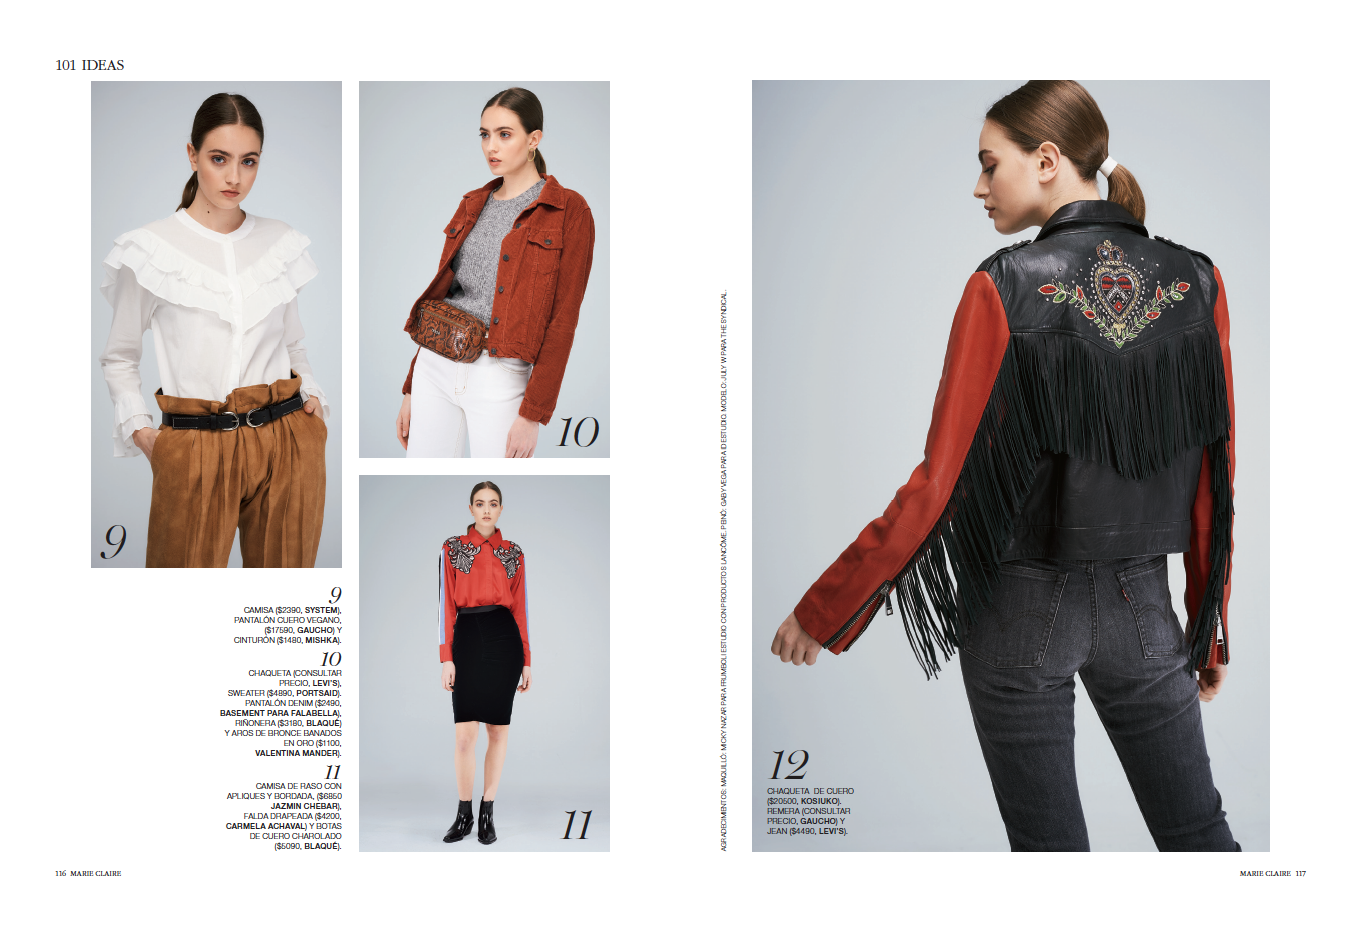 Western Trend Editorial by Marie Clarie Featuring Julia W.    - Argentina